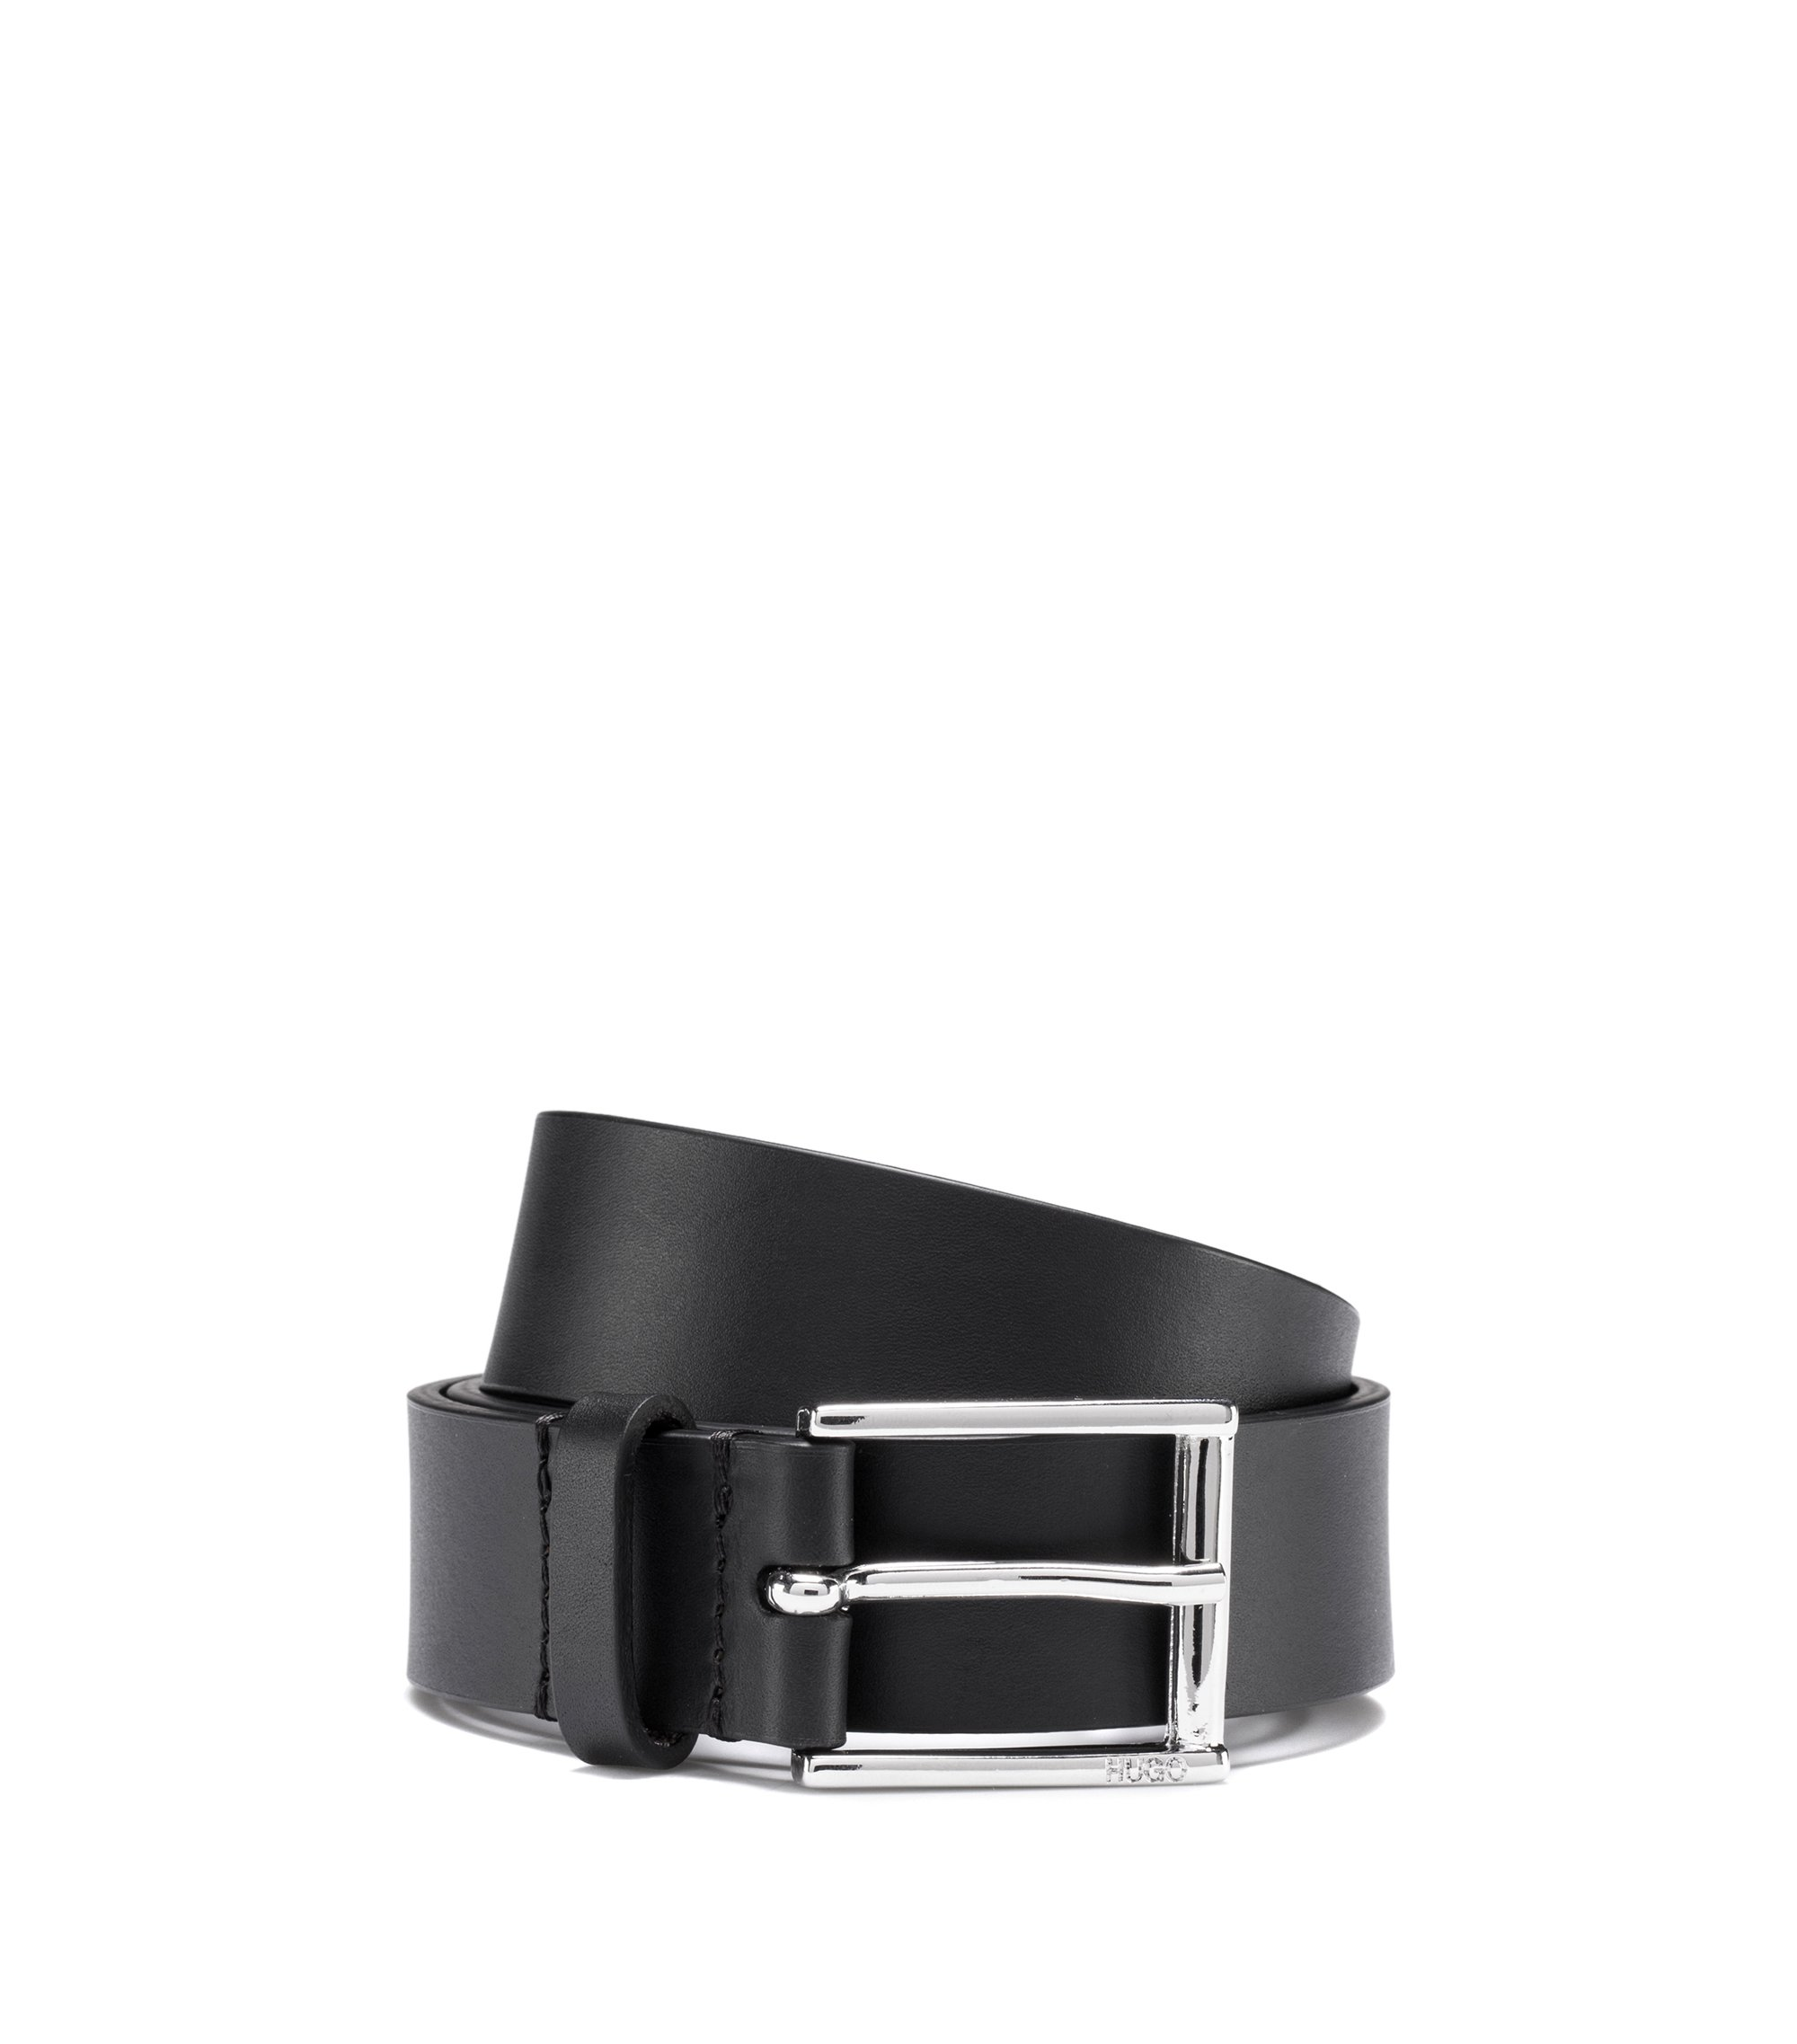 Italian-leather belt with reverse logo, Noir